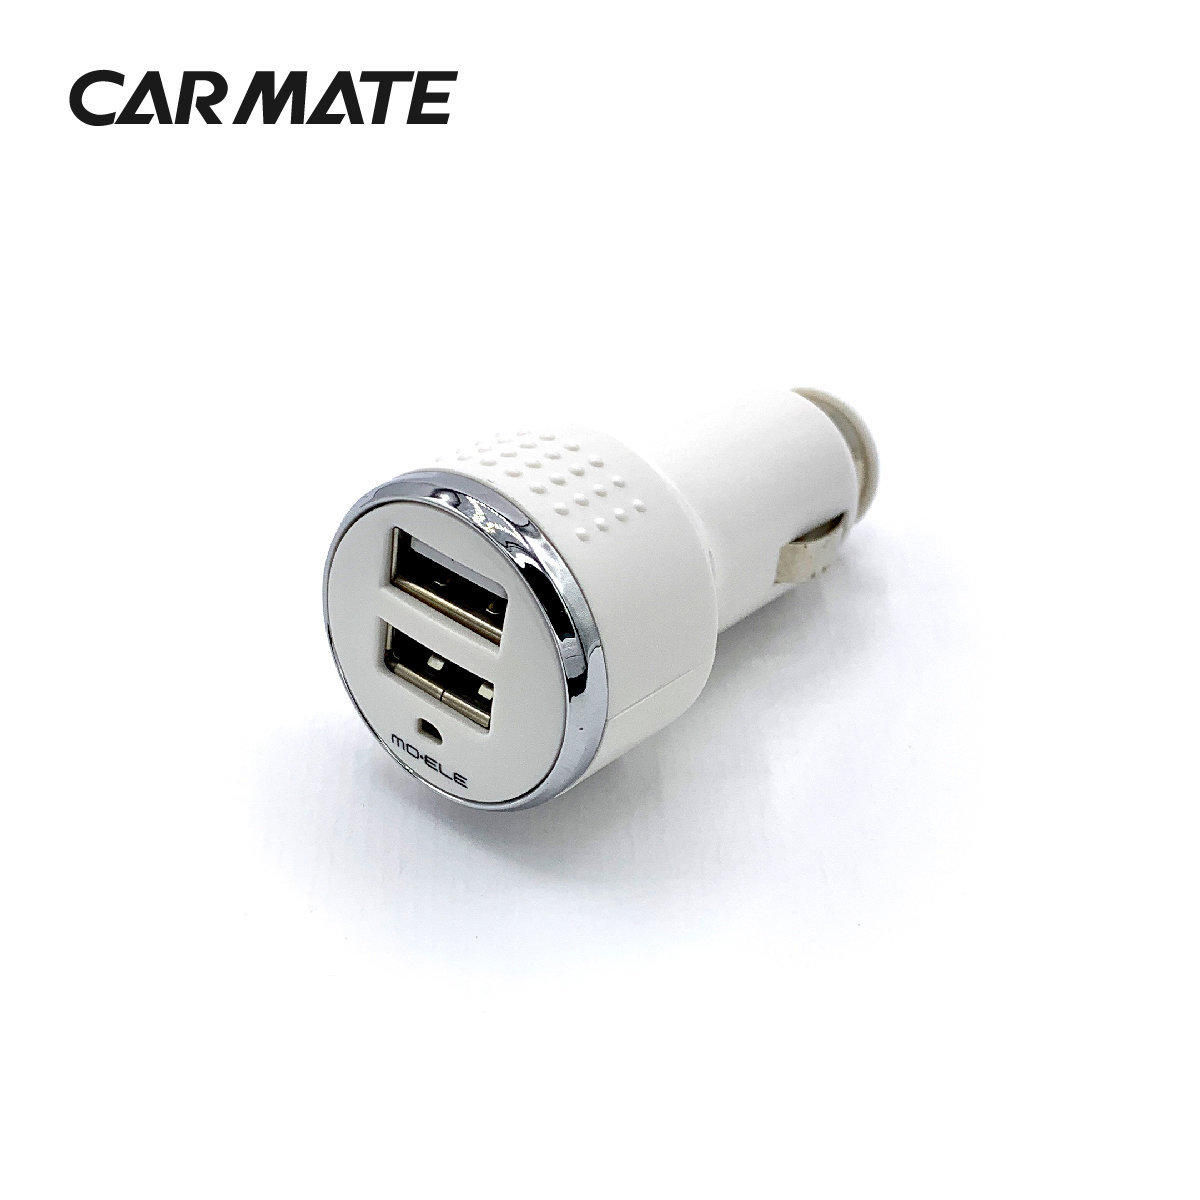 CARMATE - IN-CAR USB CHARGER 3.1A - WHITE